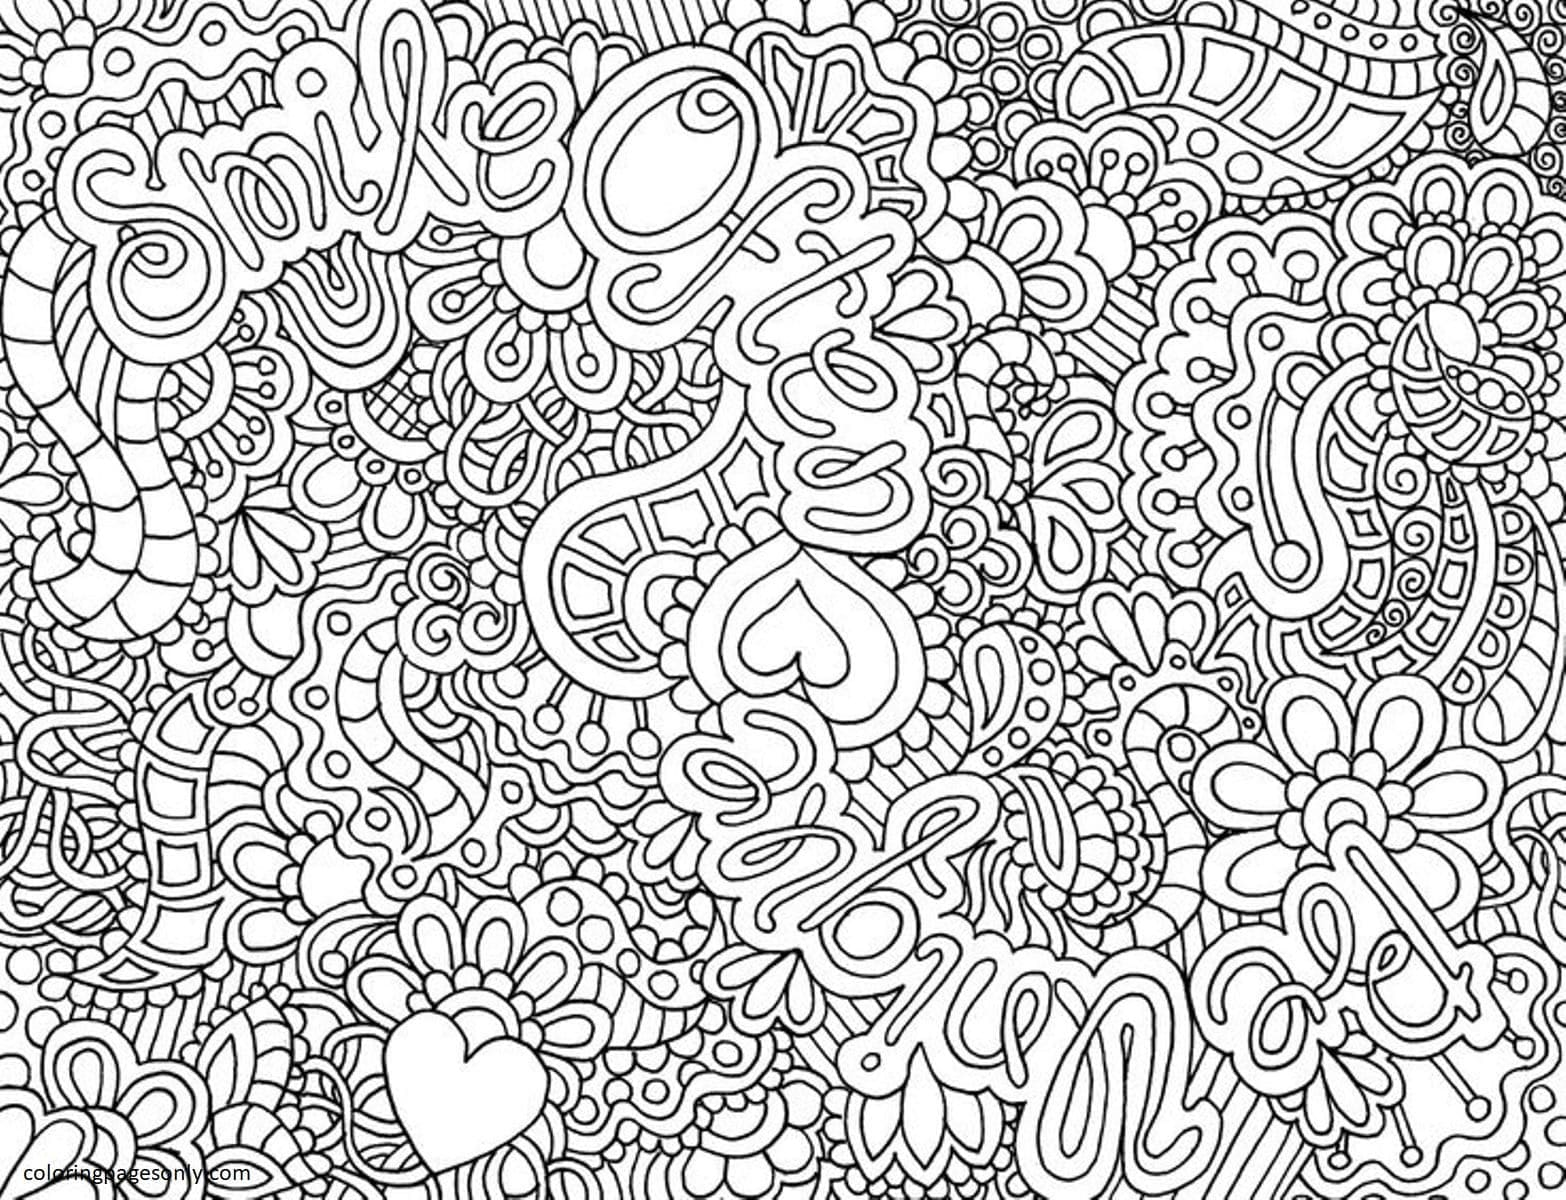 Teenages 1 Coloring Page